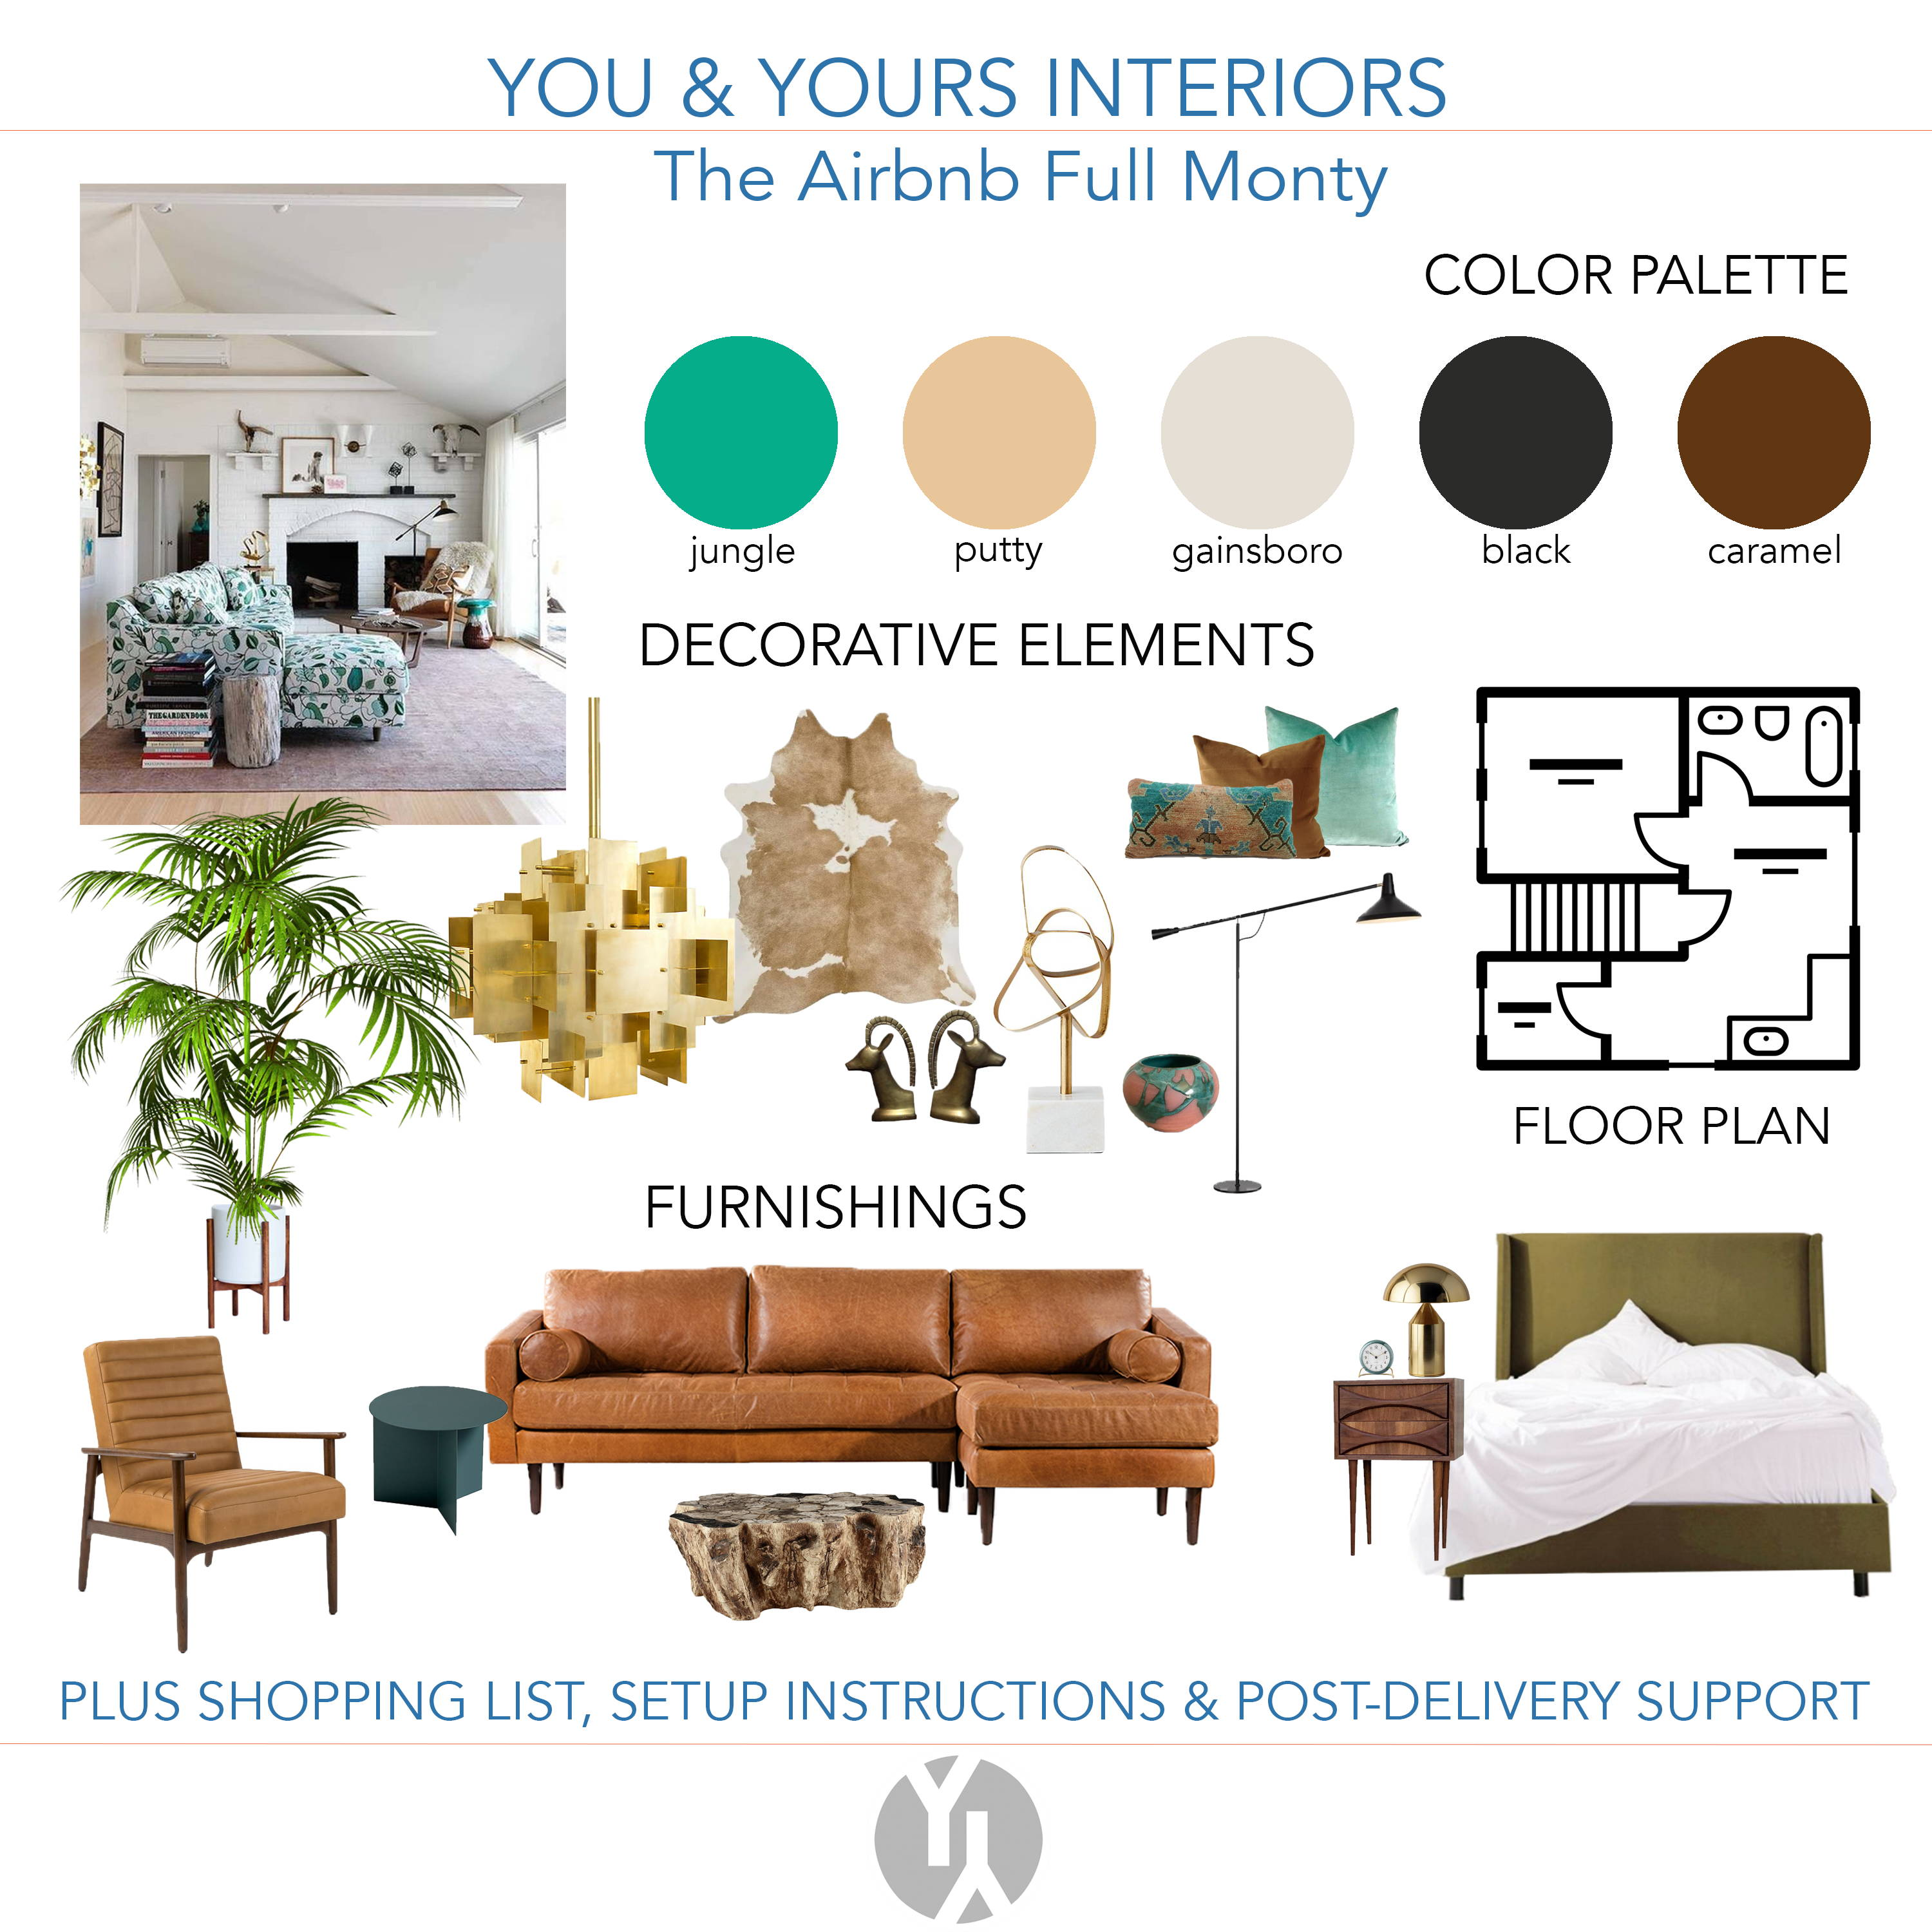 A concept board including a green and brown color palette, brown leather sectional and lounger, green side table, an icon of a floor plan, and brass decorative items.